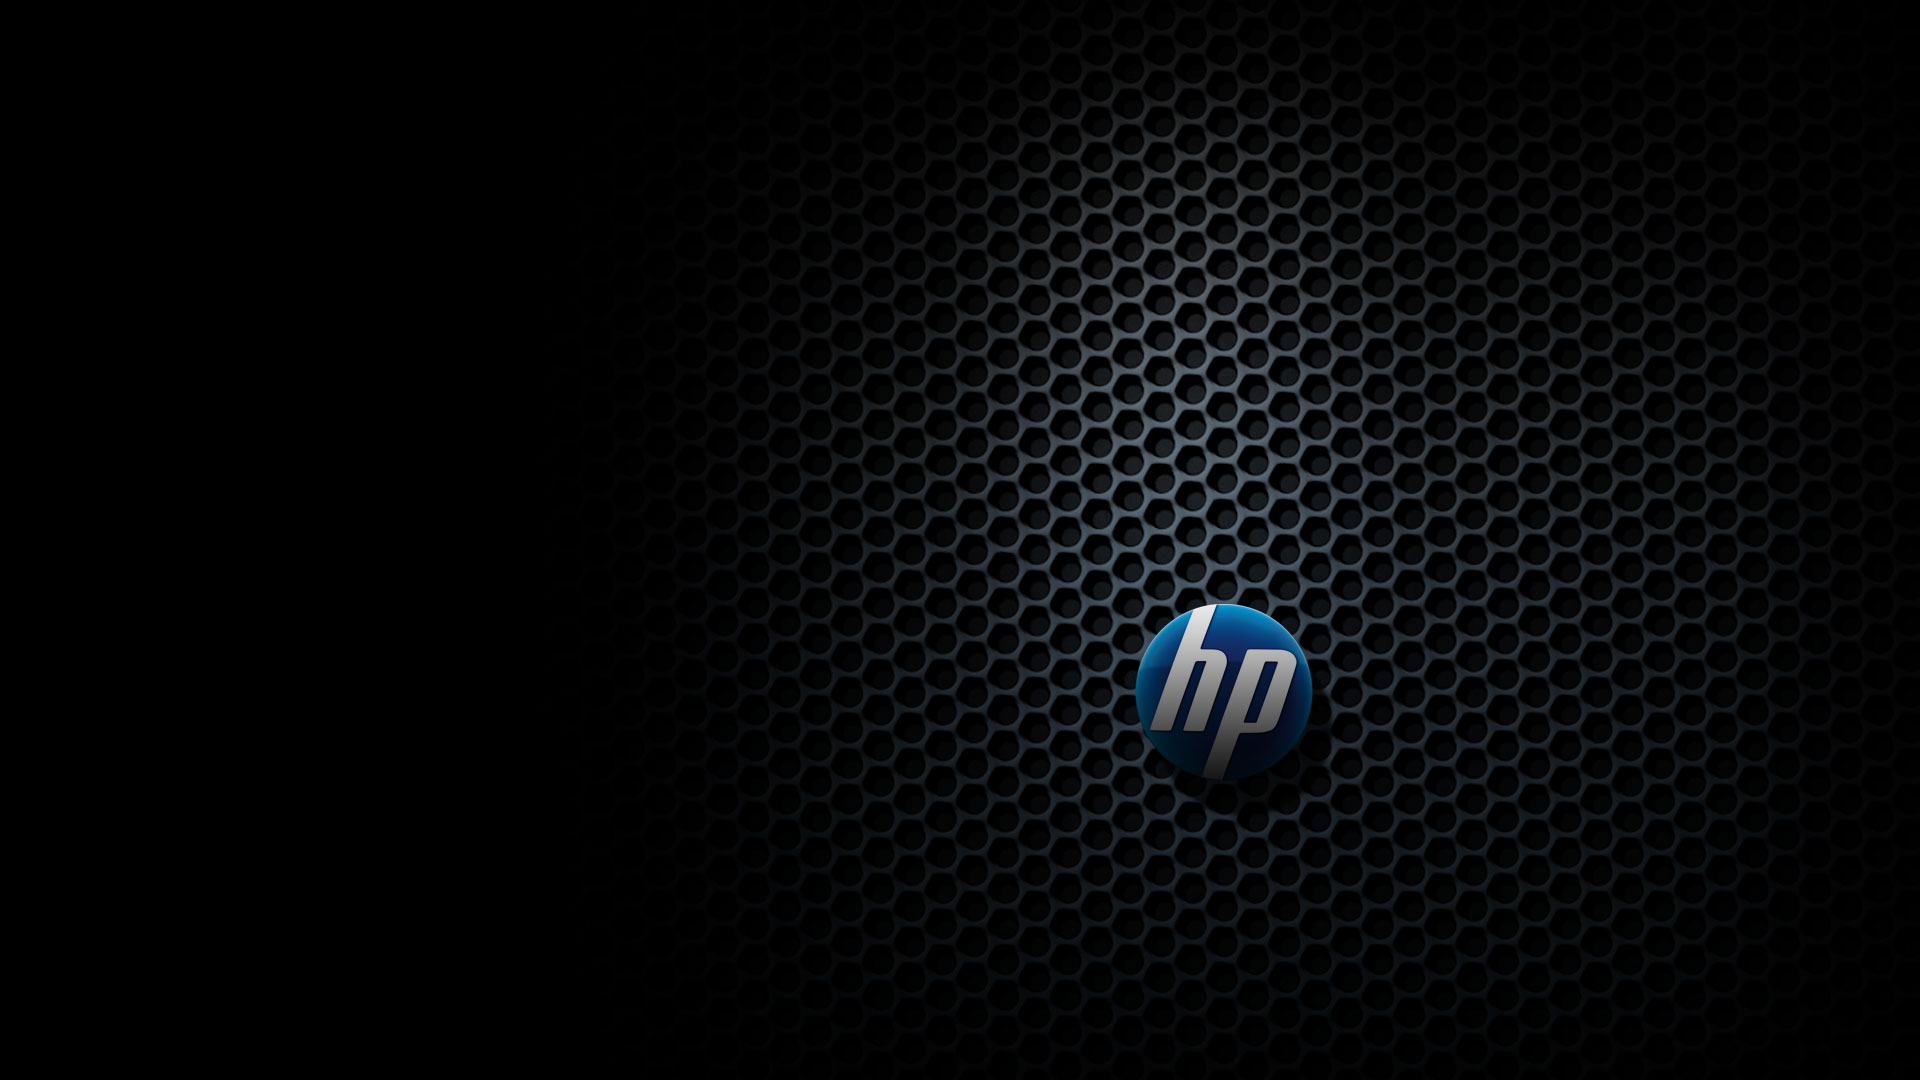 Hp HD Wallpapers For Windows 8